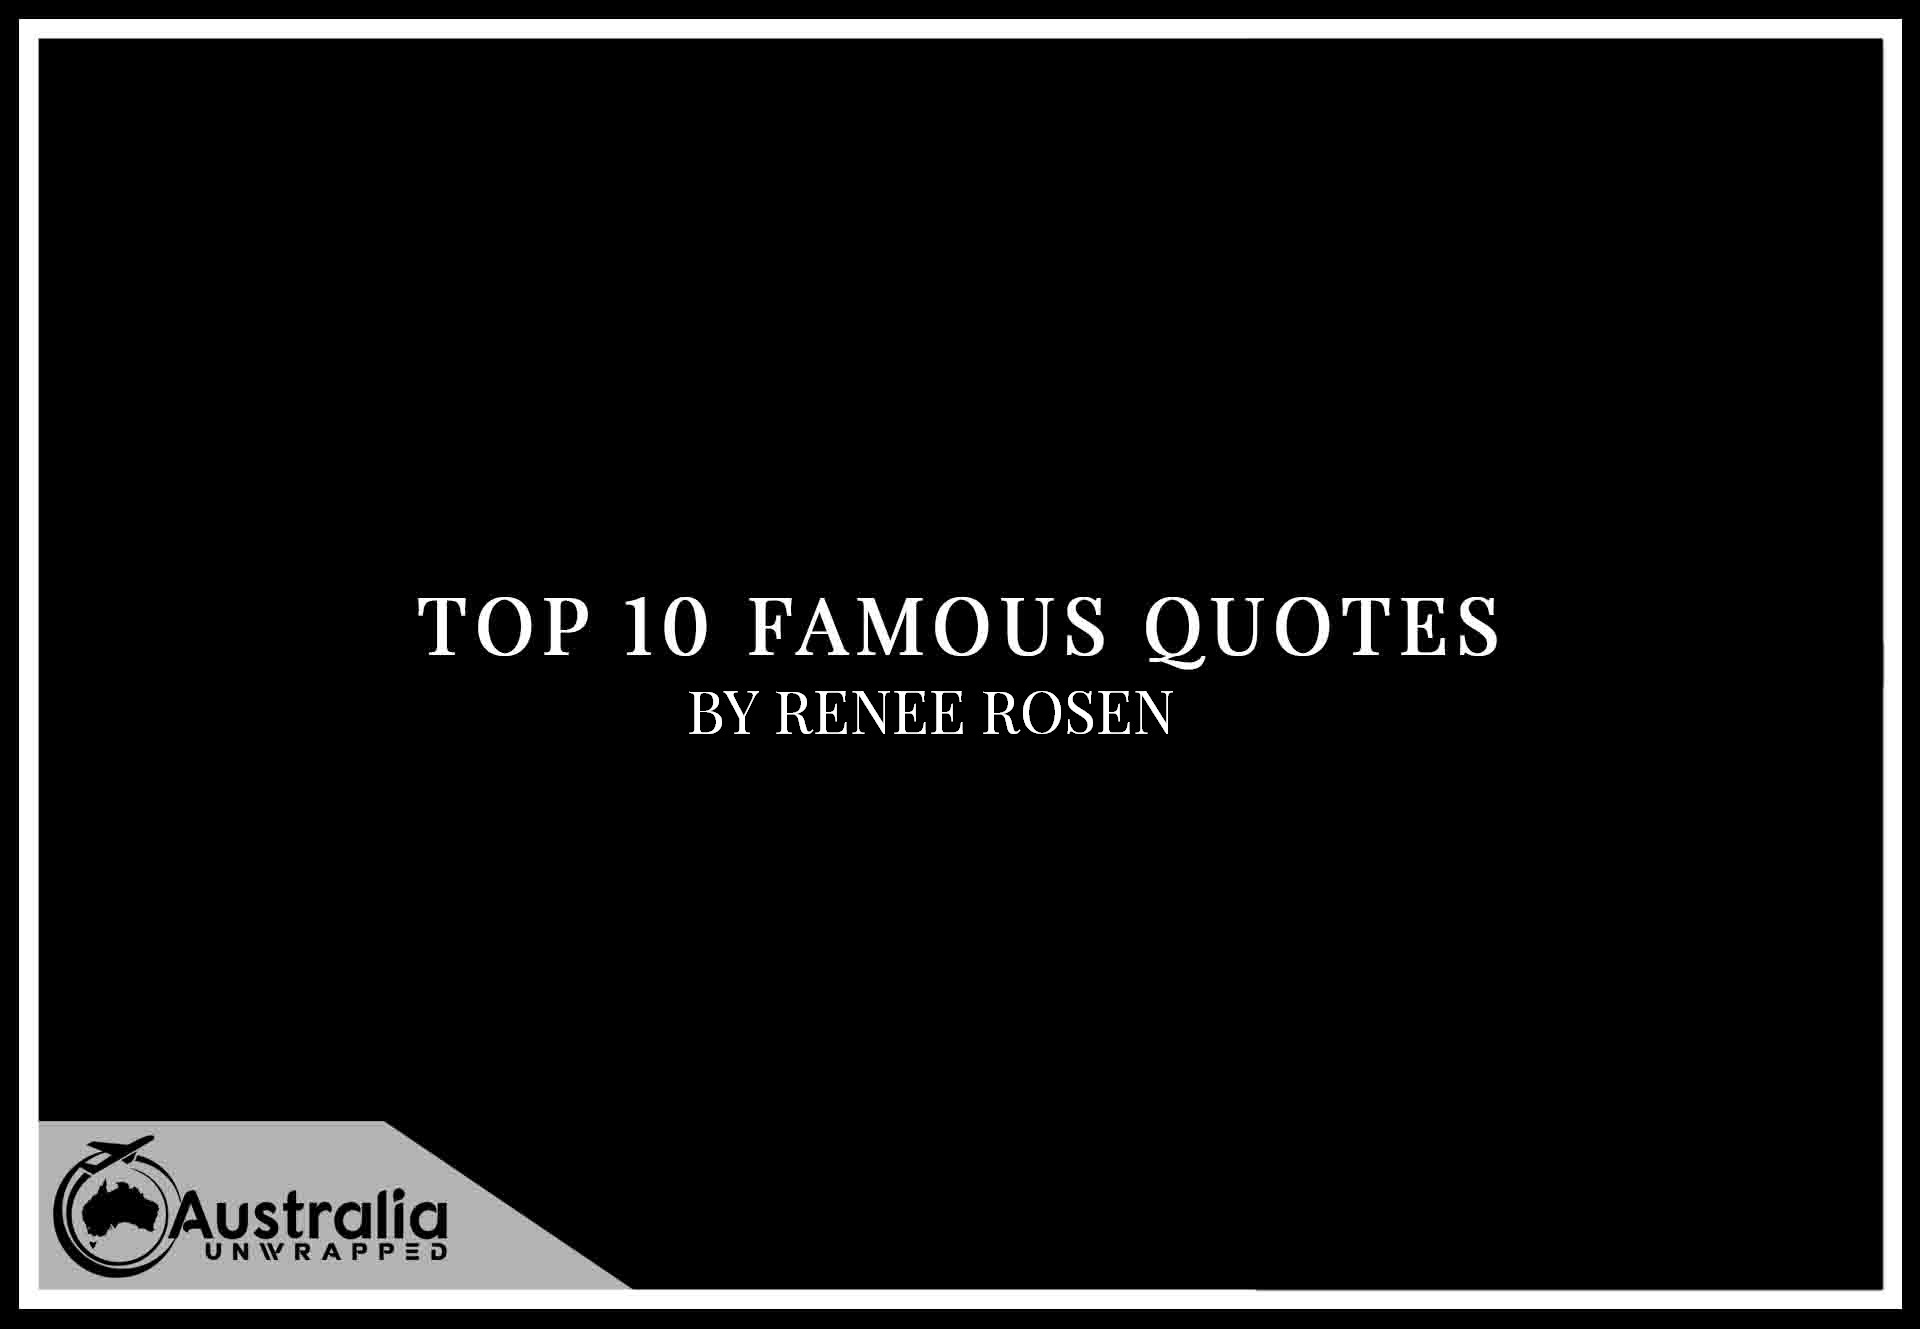 Renee Rosen's Top 10 Popular and Famous Quotes